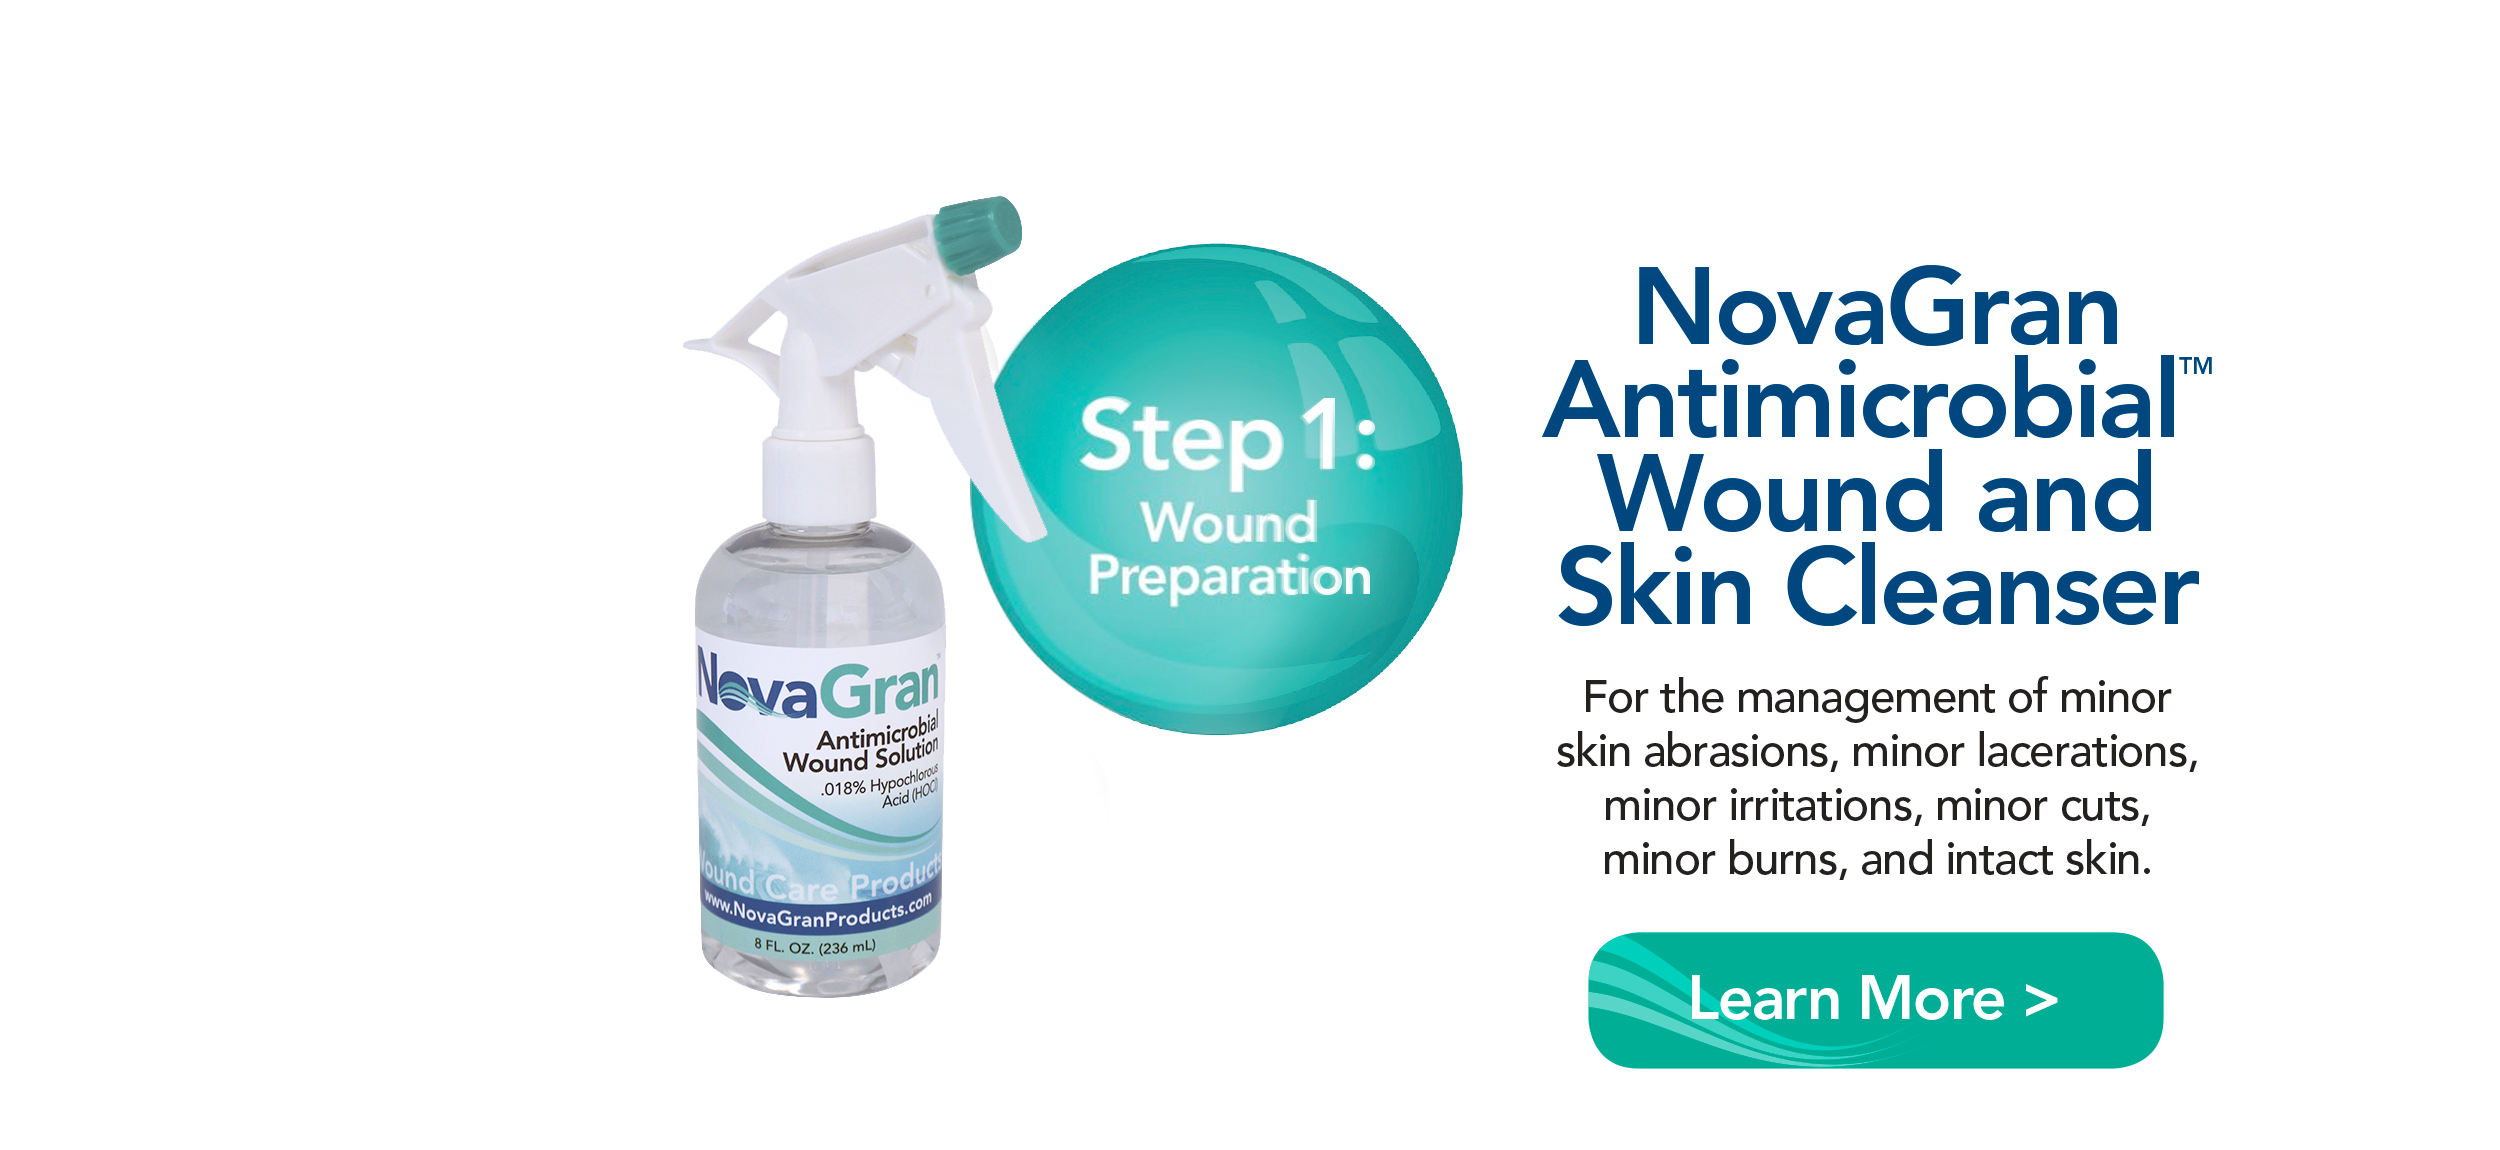 NovaGran Antimicrobial Wound and Skin Cleanser